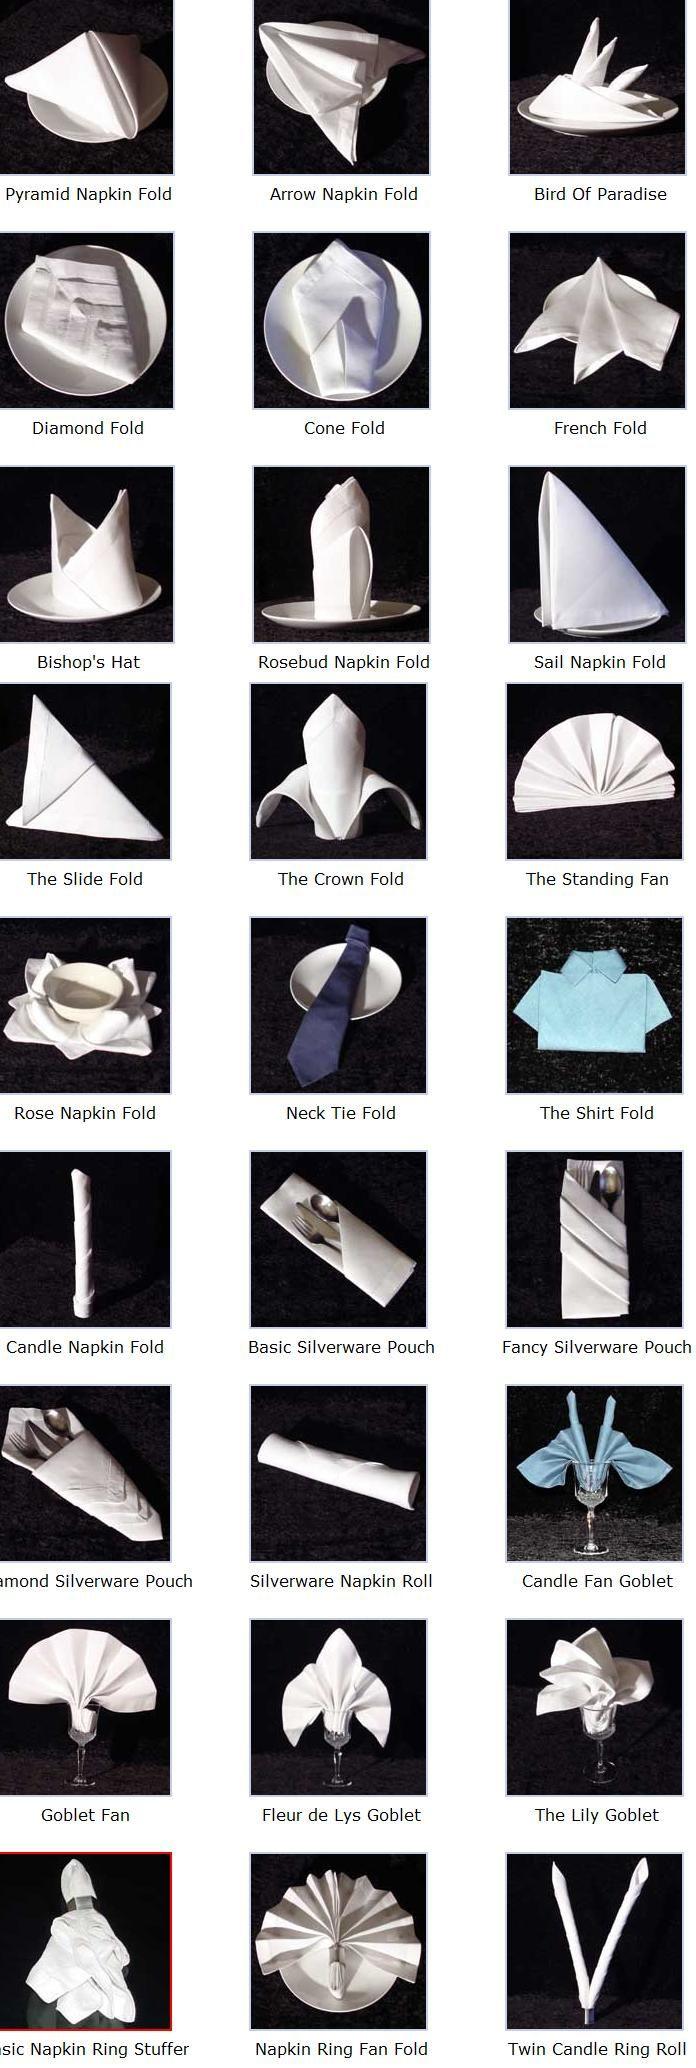 Napkin folding ... for those OCD enough to worry about how your napkins will be in your banquet hall #foldingnapkins